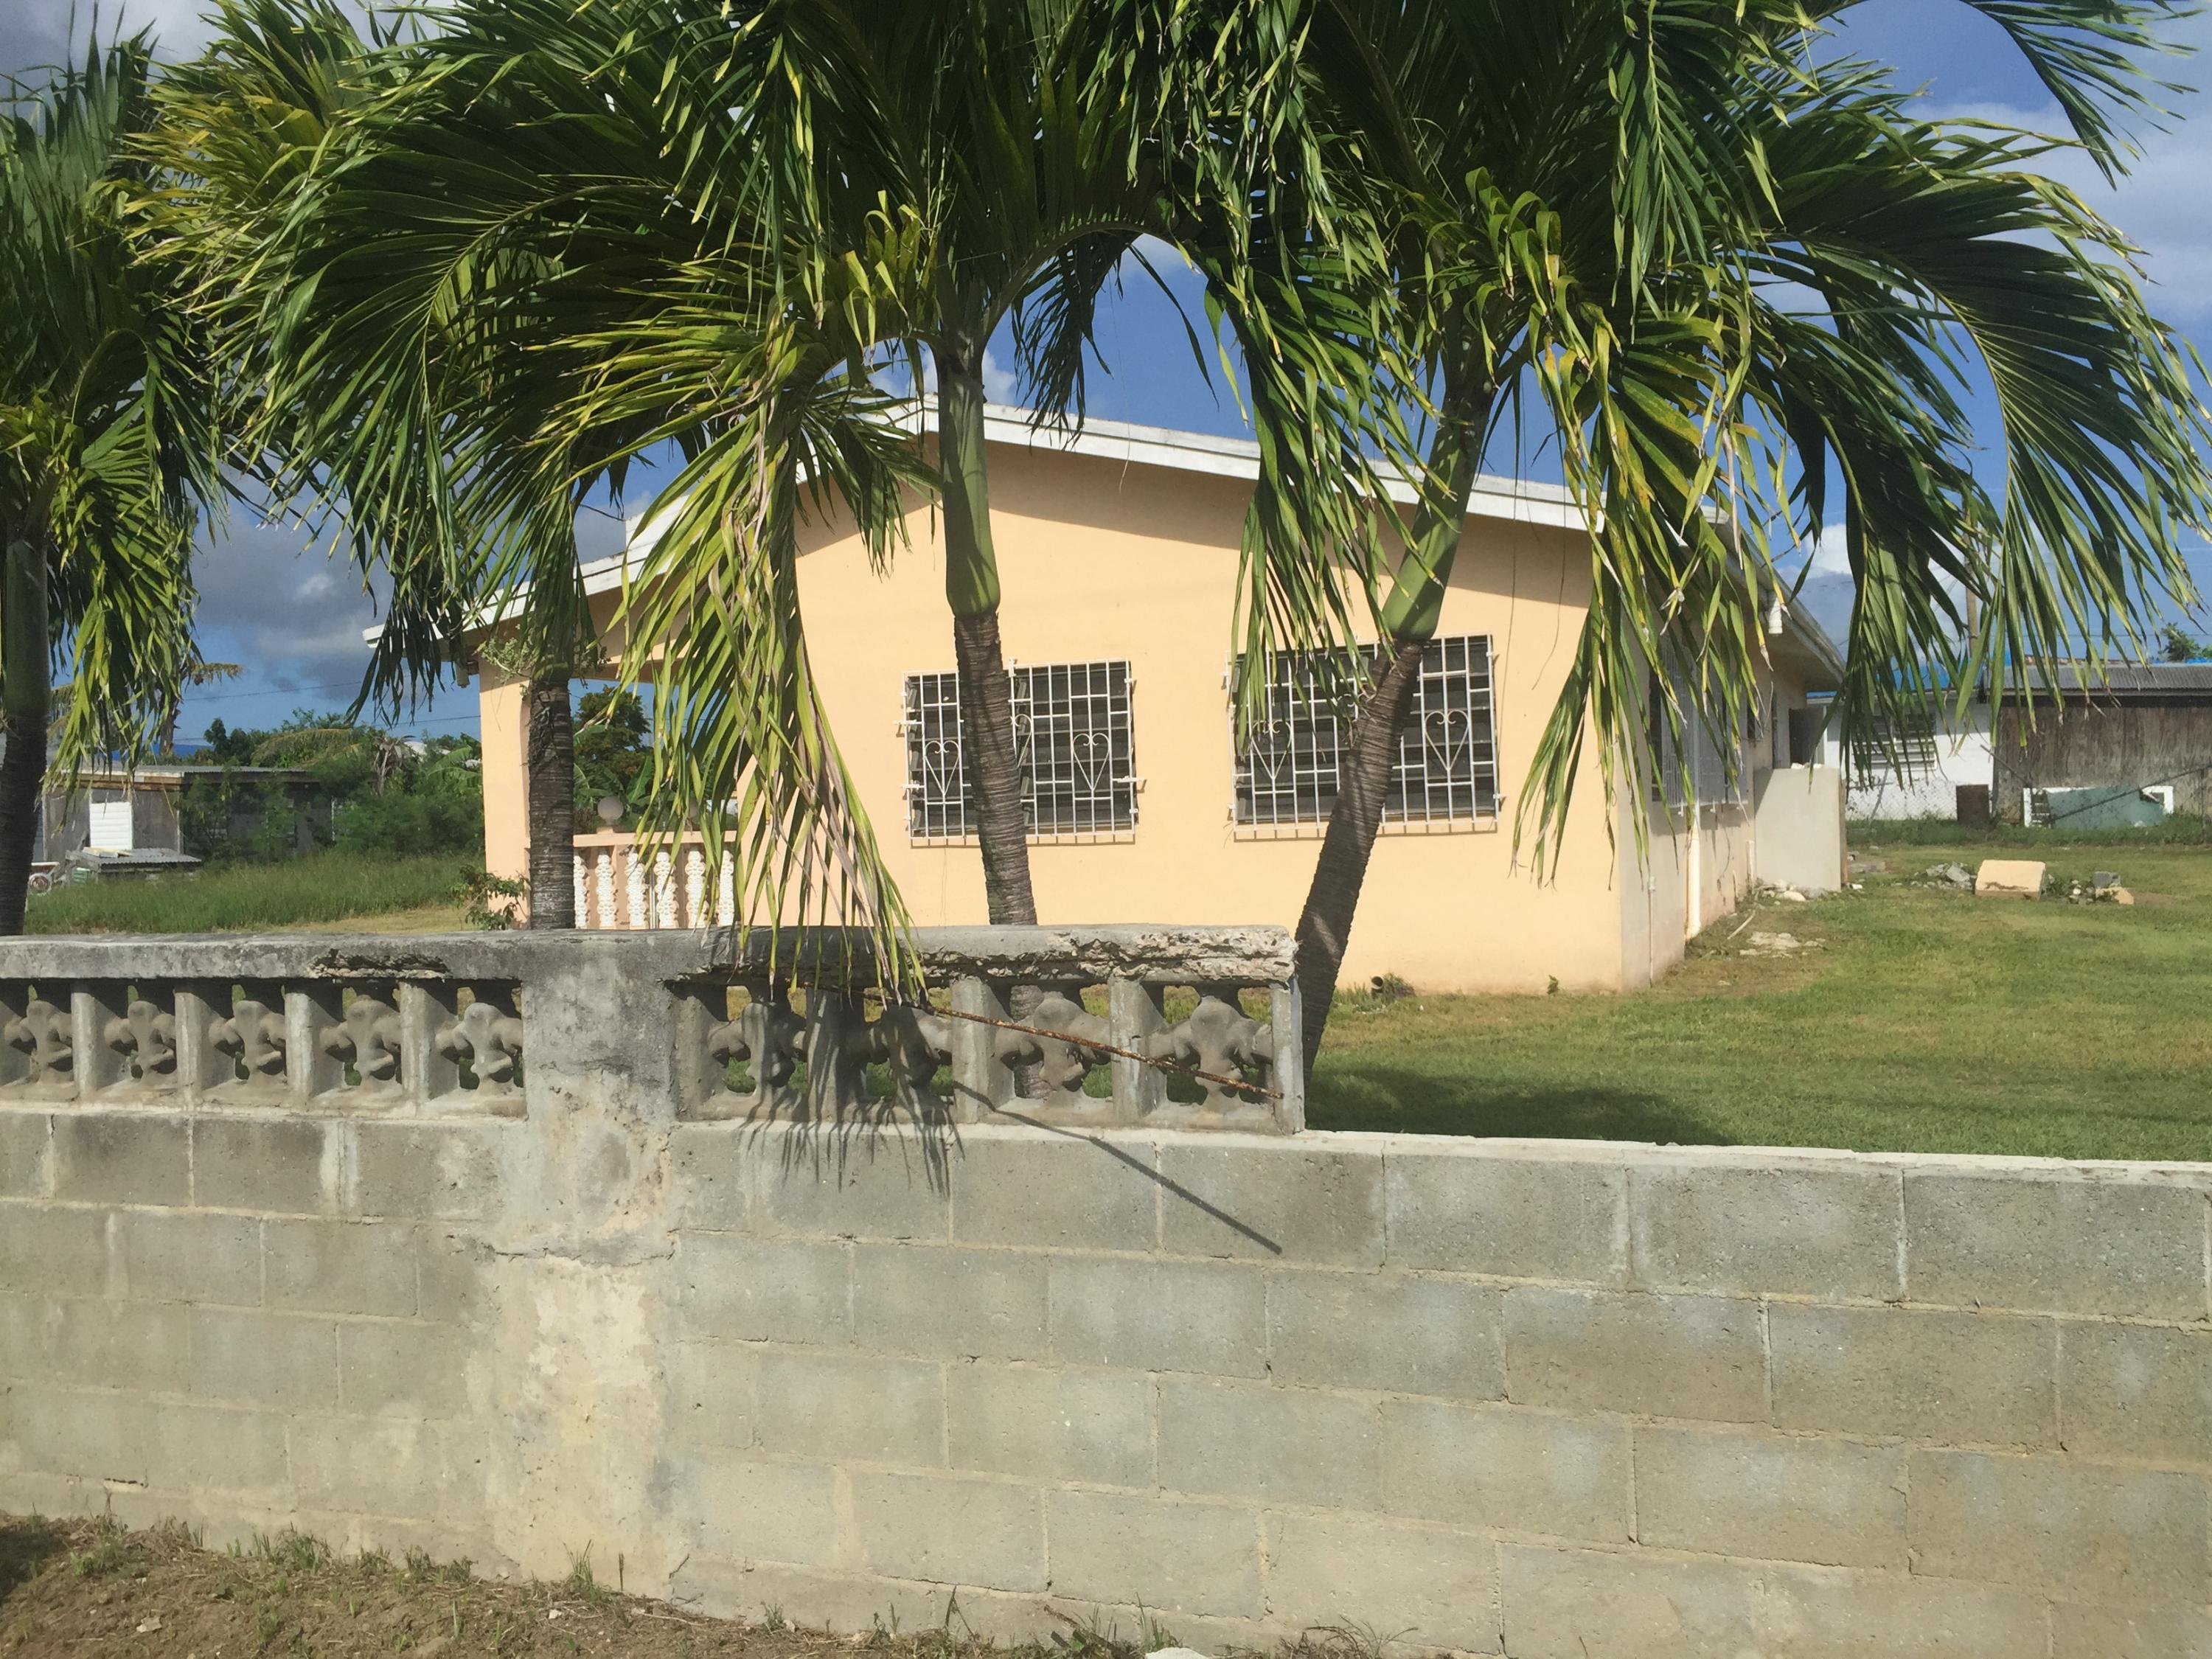 Single Family Home for Sale at 355 William's Delight PR 355 William's Delight PR St Croix, Virgin Islands 00840 United States Virgin Islands